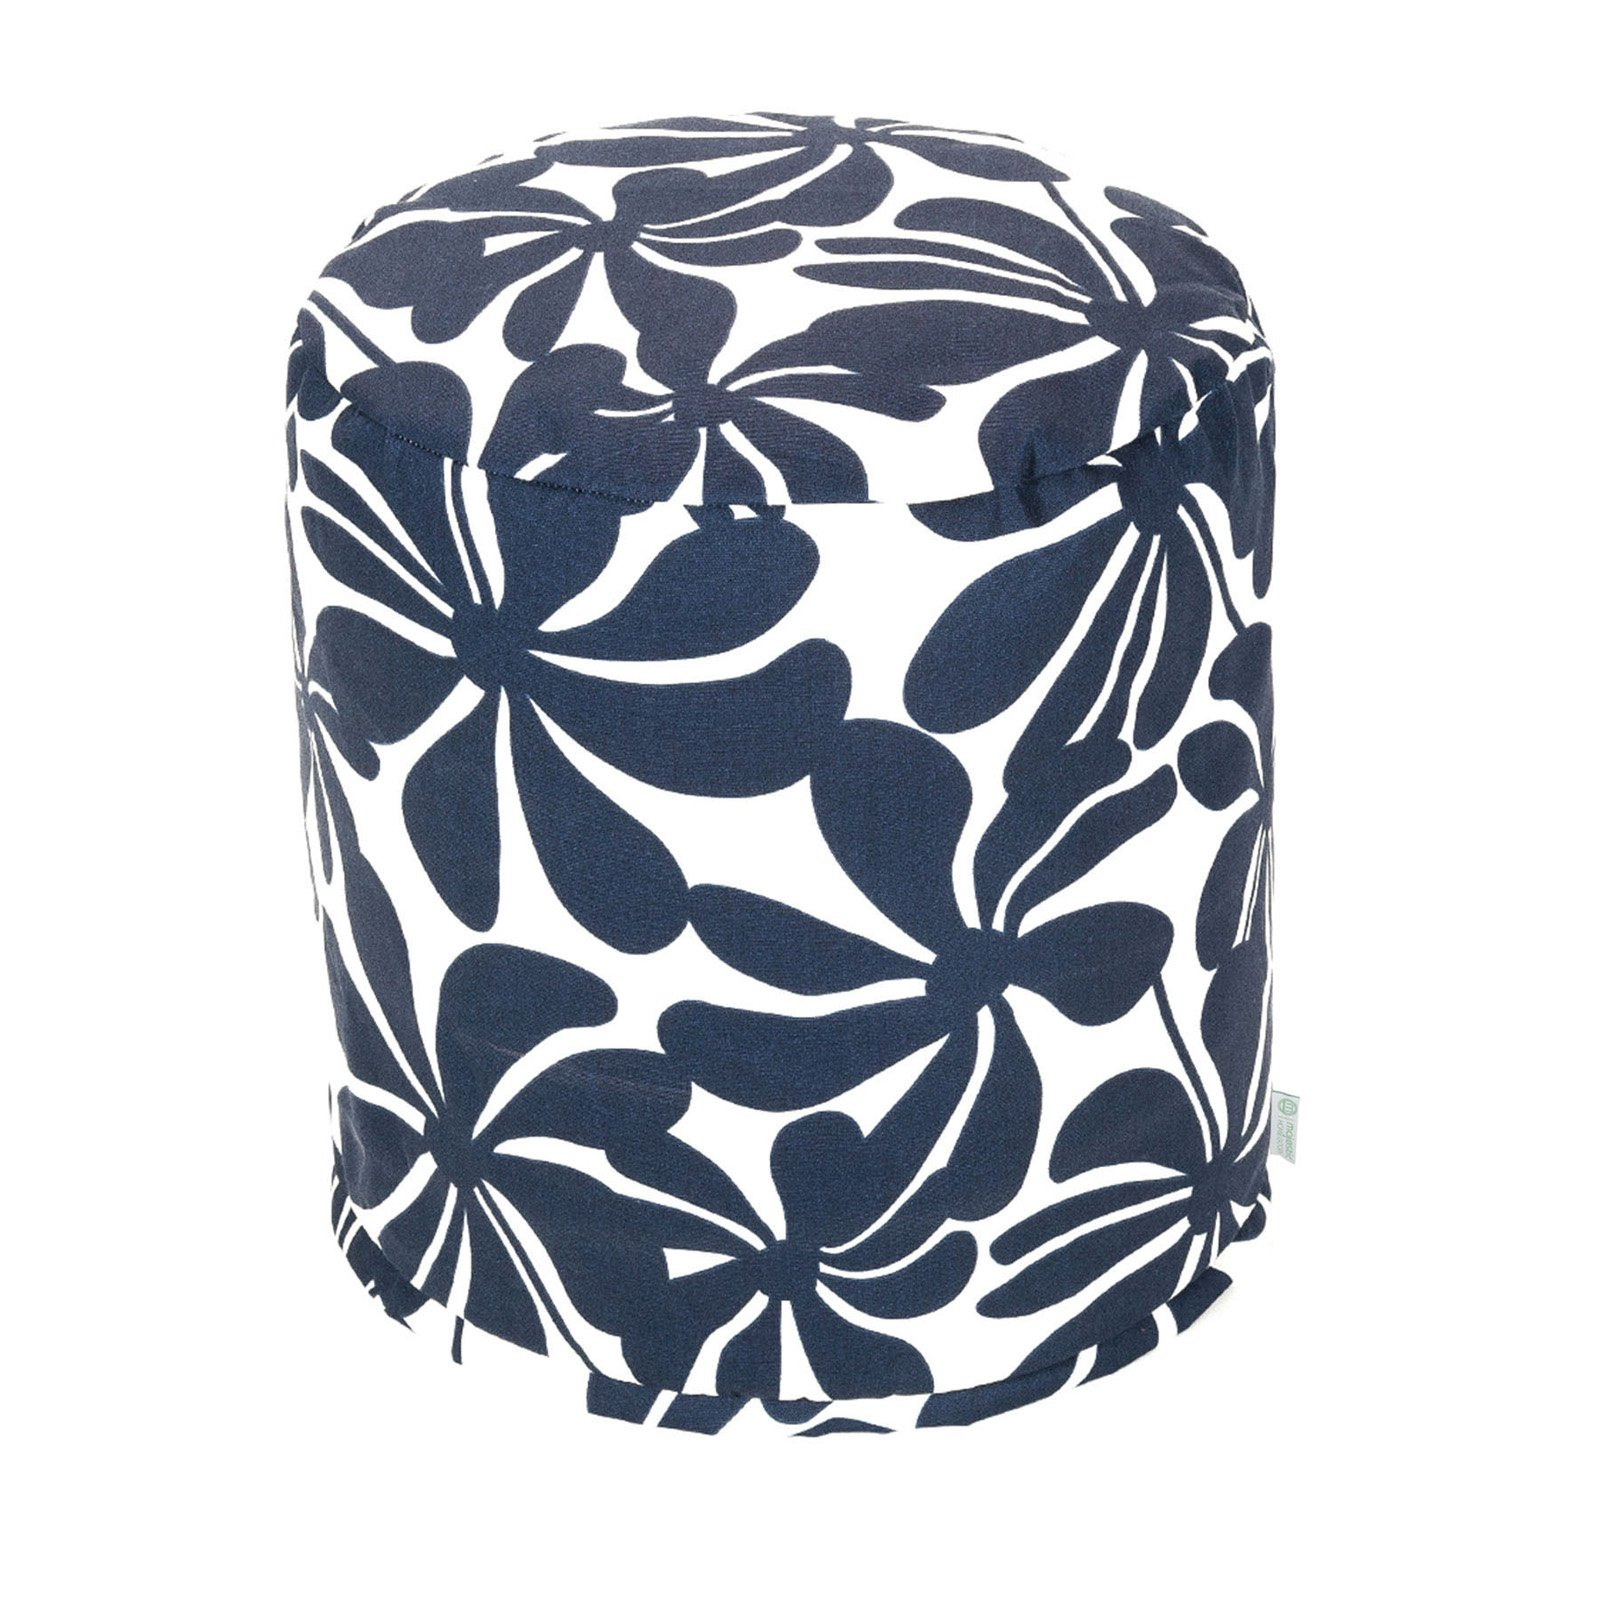 Majestic Home Goods 16 in. Round Outdoor Pouf